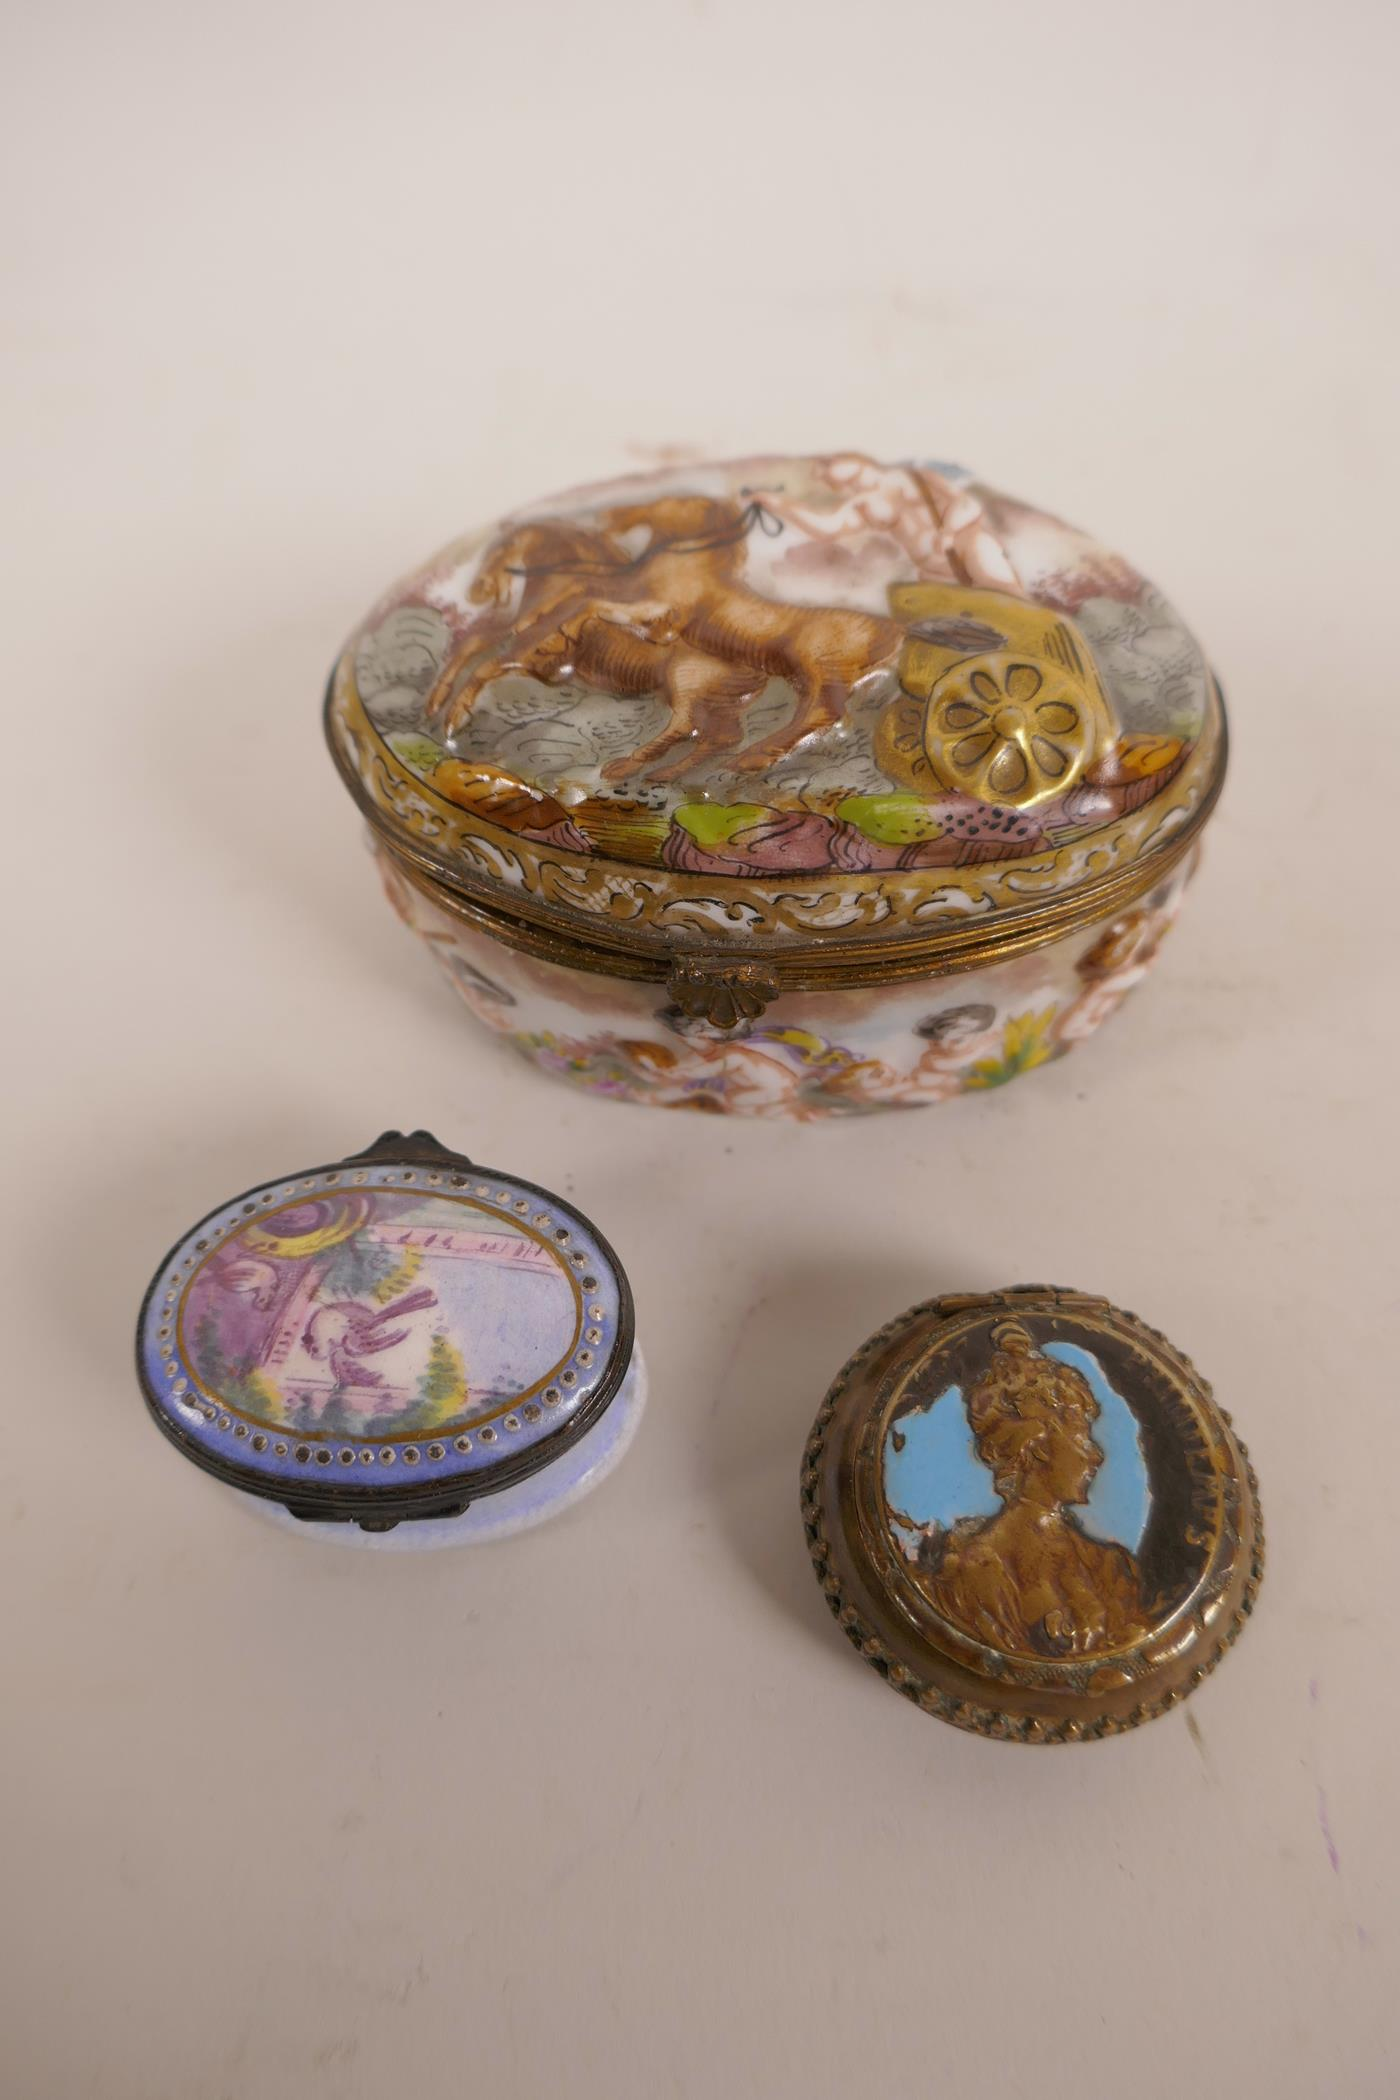 Lot 19 - Two C19th enamel patch boxes, and a large enamelled Naples box decorated with cherubs and a Roman